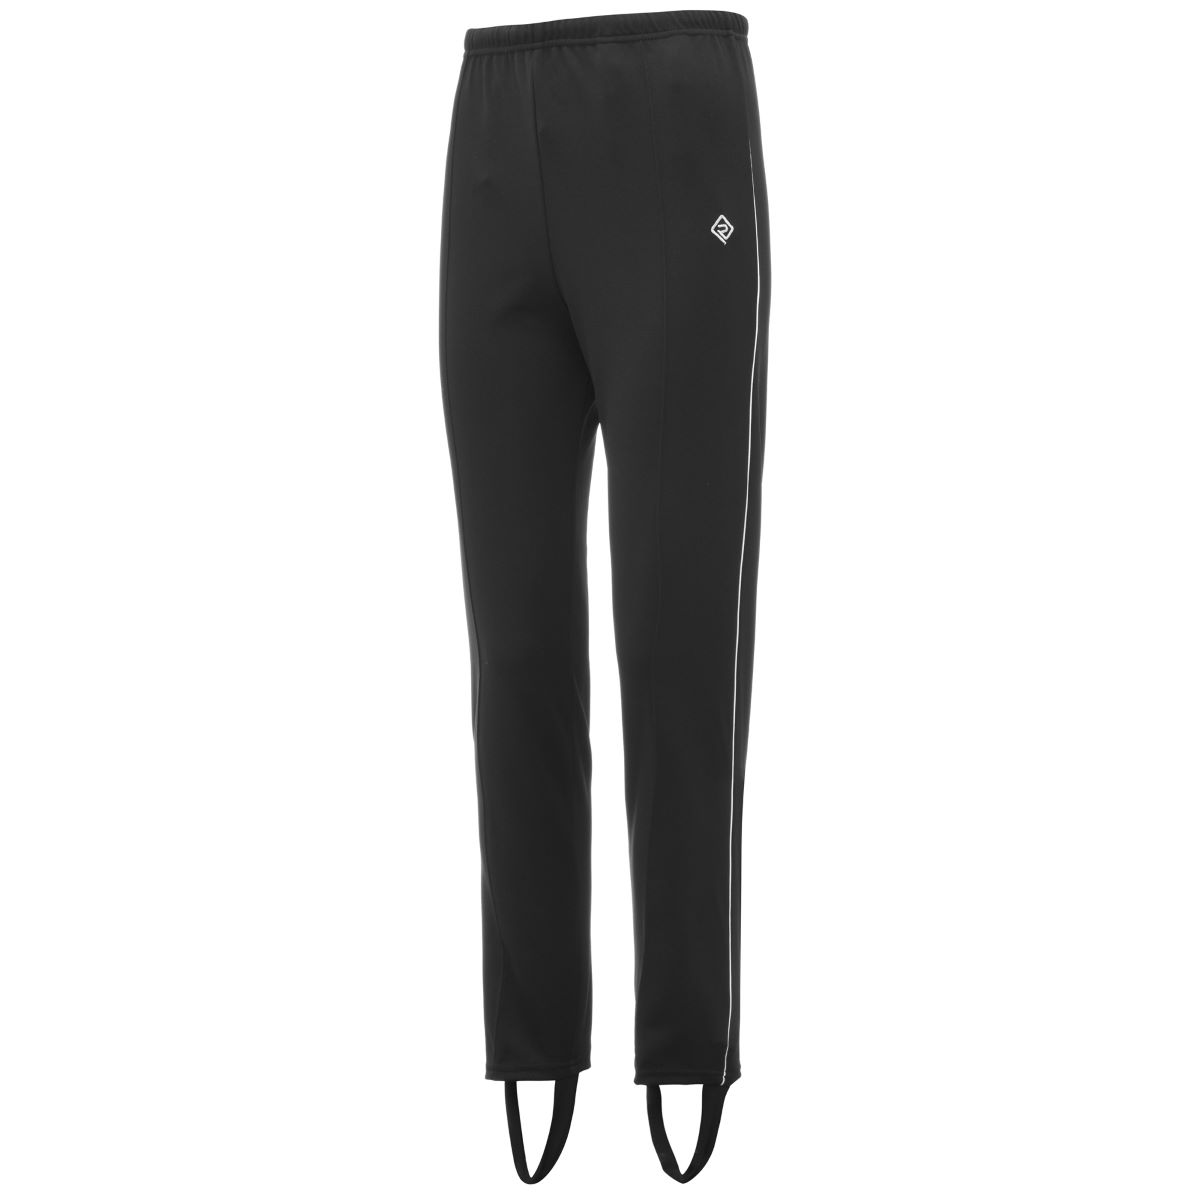 Image of Collant Femme Ronhill Classic Tracksters - 8 UK Noir/Blanc | Joggings